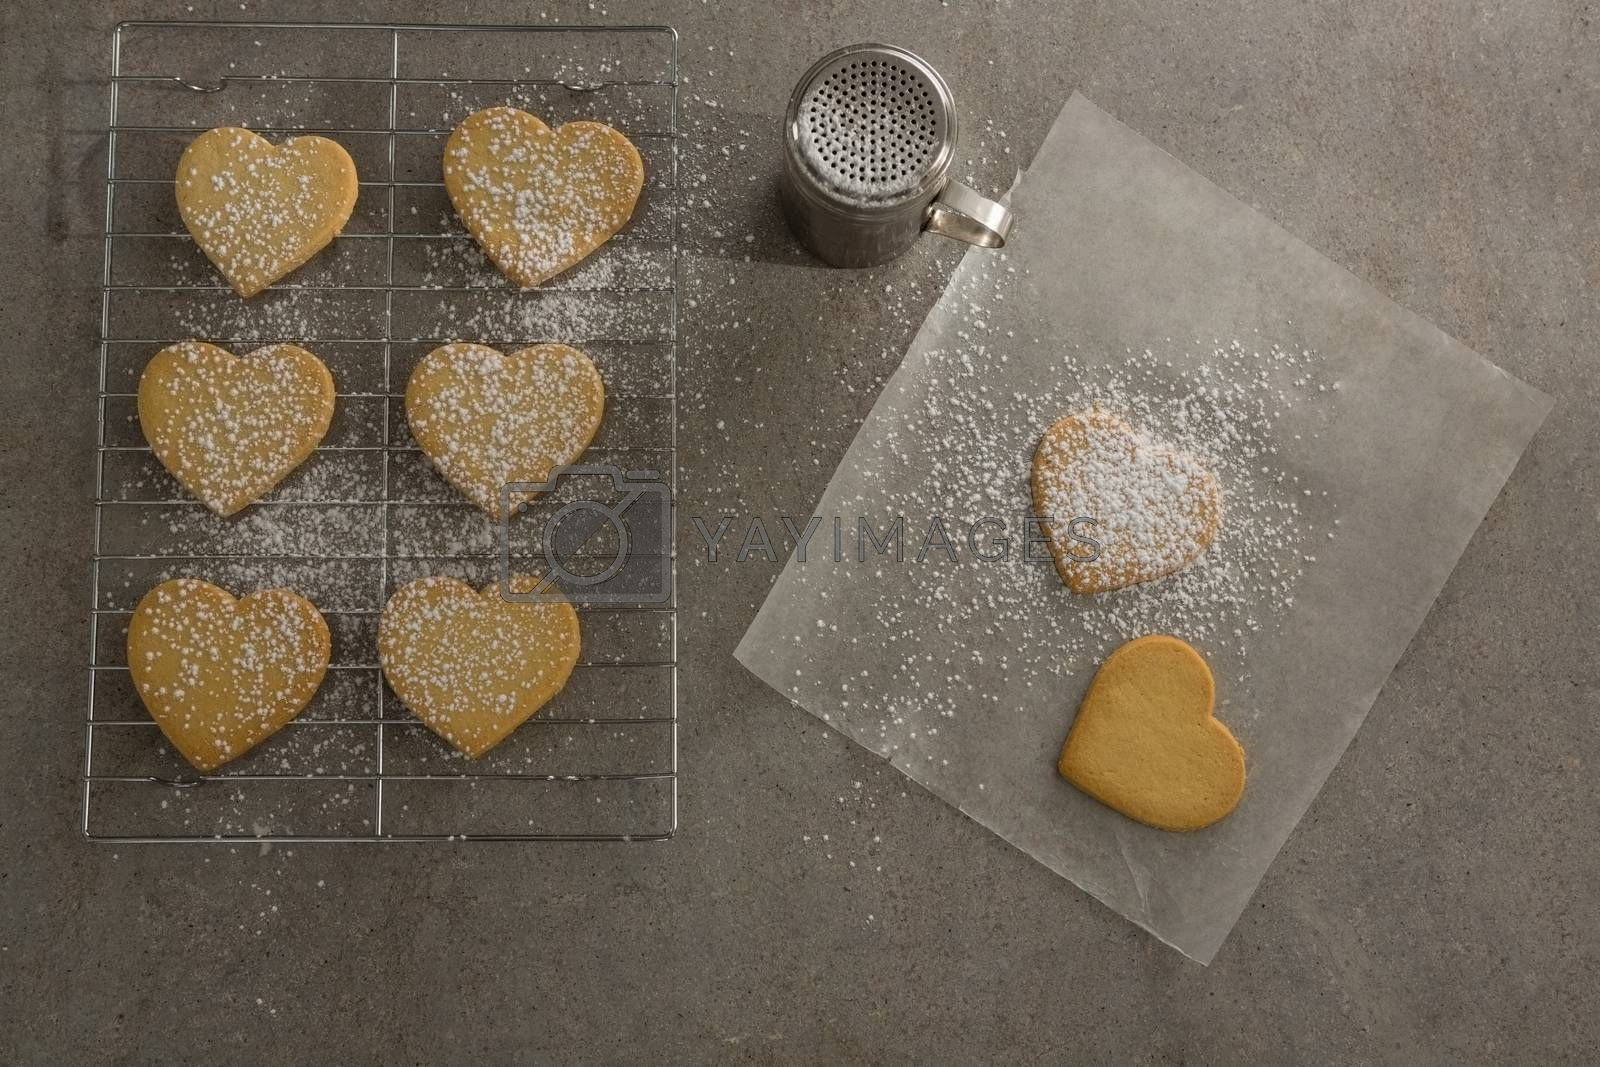 Raw heart shape cookies on baking tray with flour shaker strainer and wax paper by Wavebreakmedia